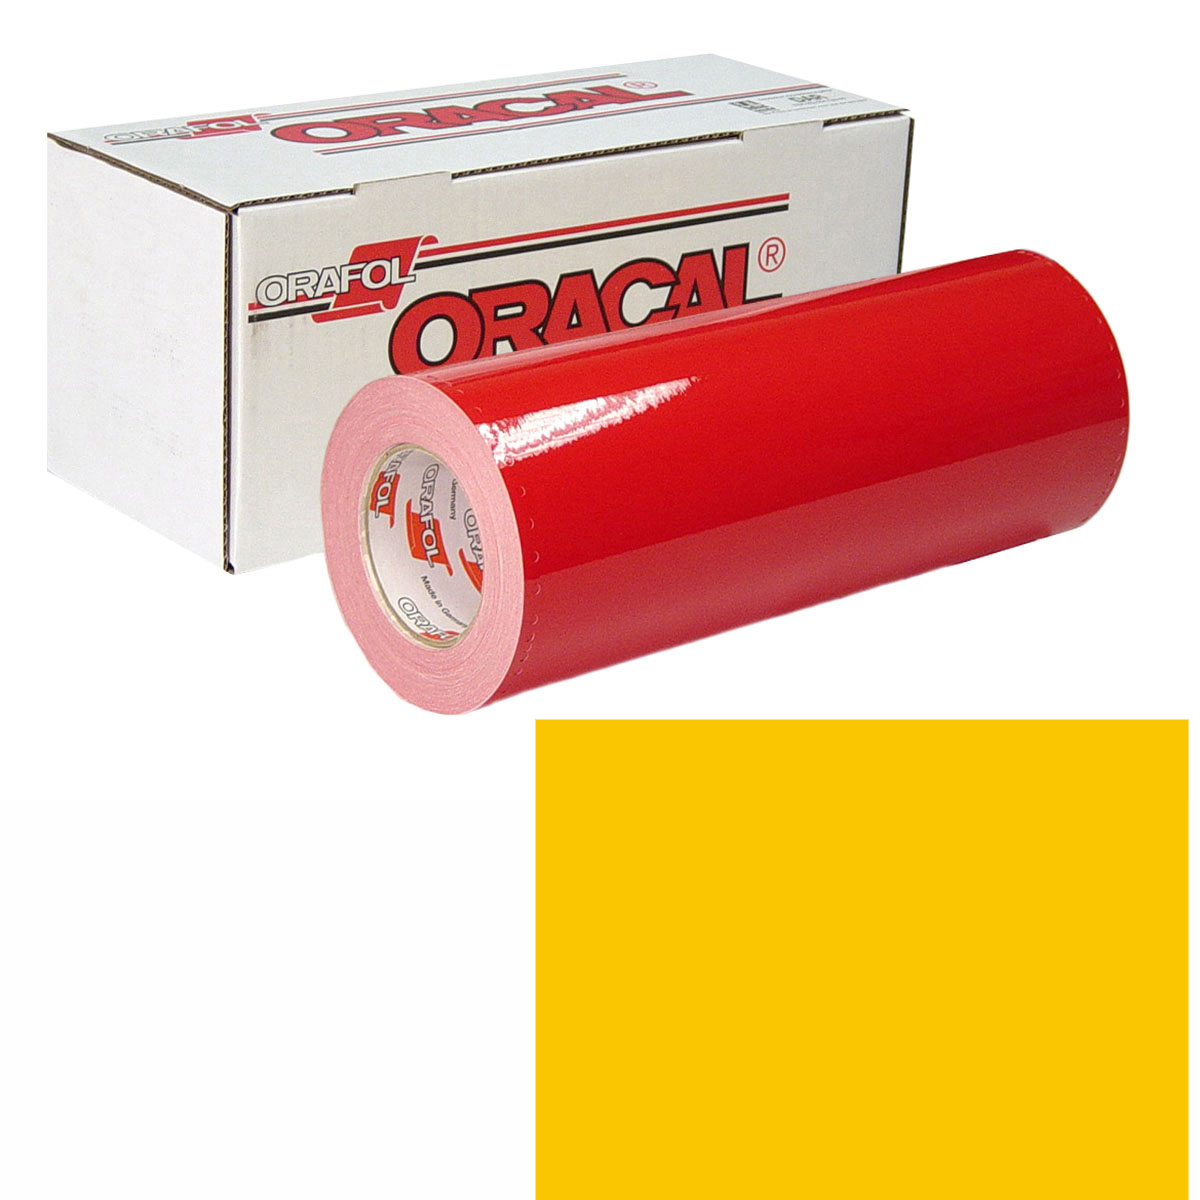 ORACAL 951 Unp 24In X 50Yd 216 Traffic Yellow